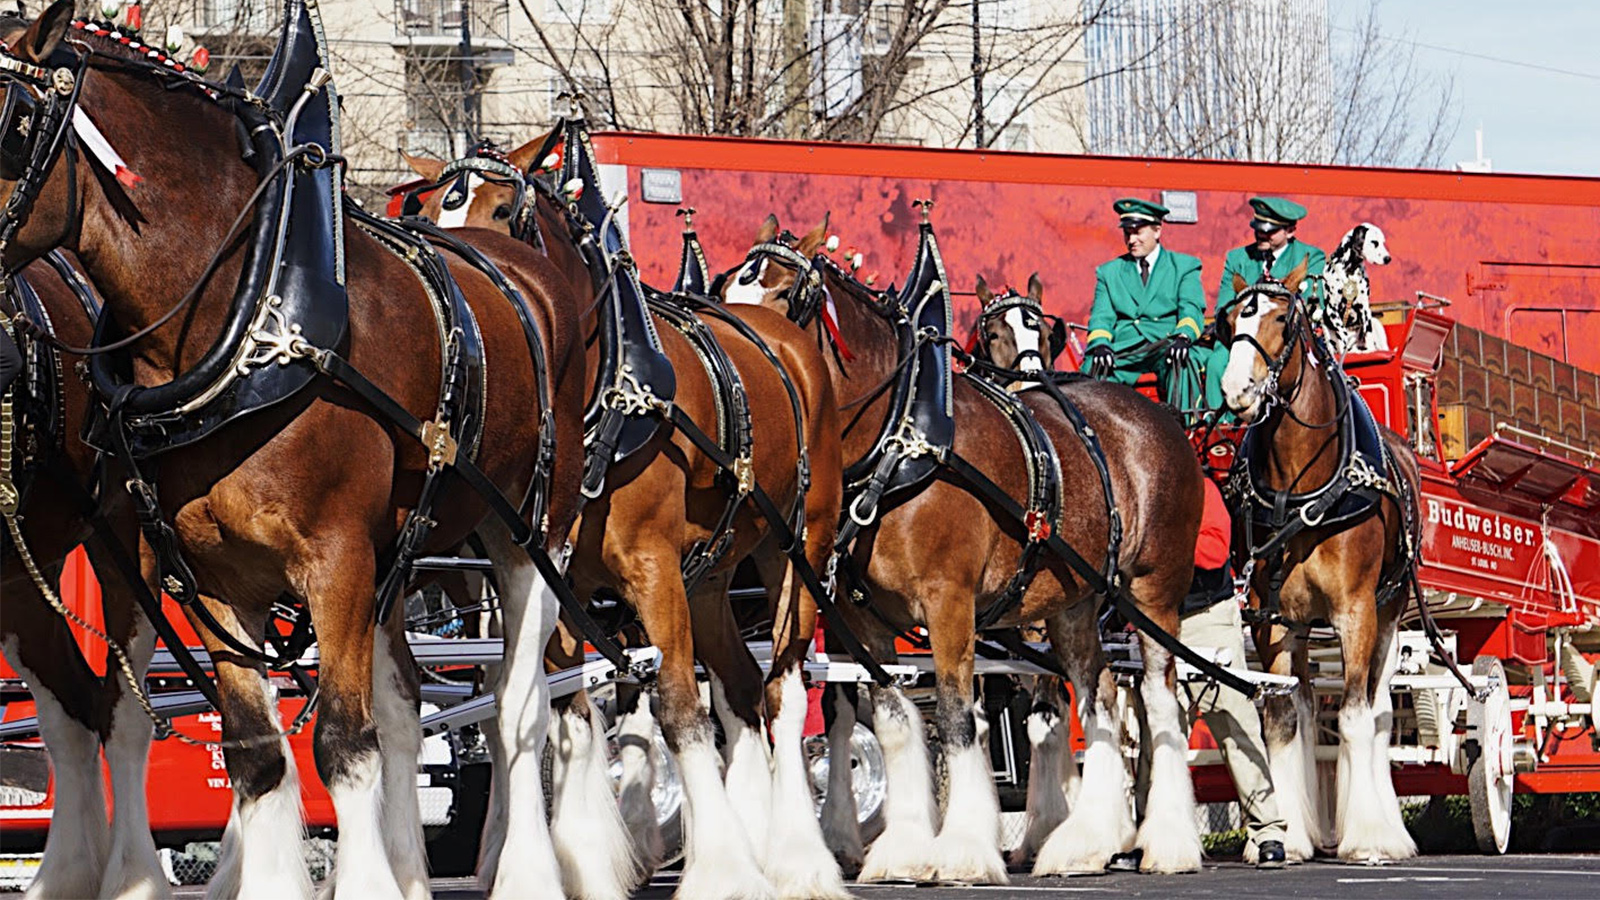 Budweiser S Clydesdales How These Gentle Giants Came To Symbolize A Brand Howstuffworks